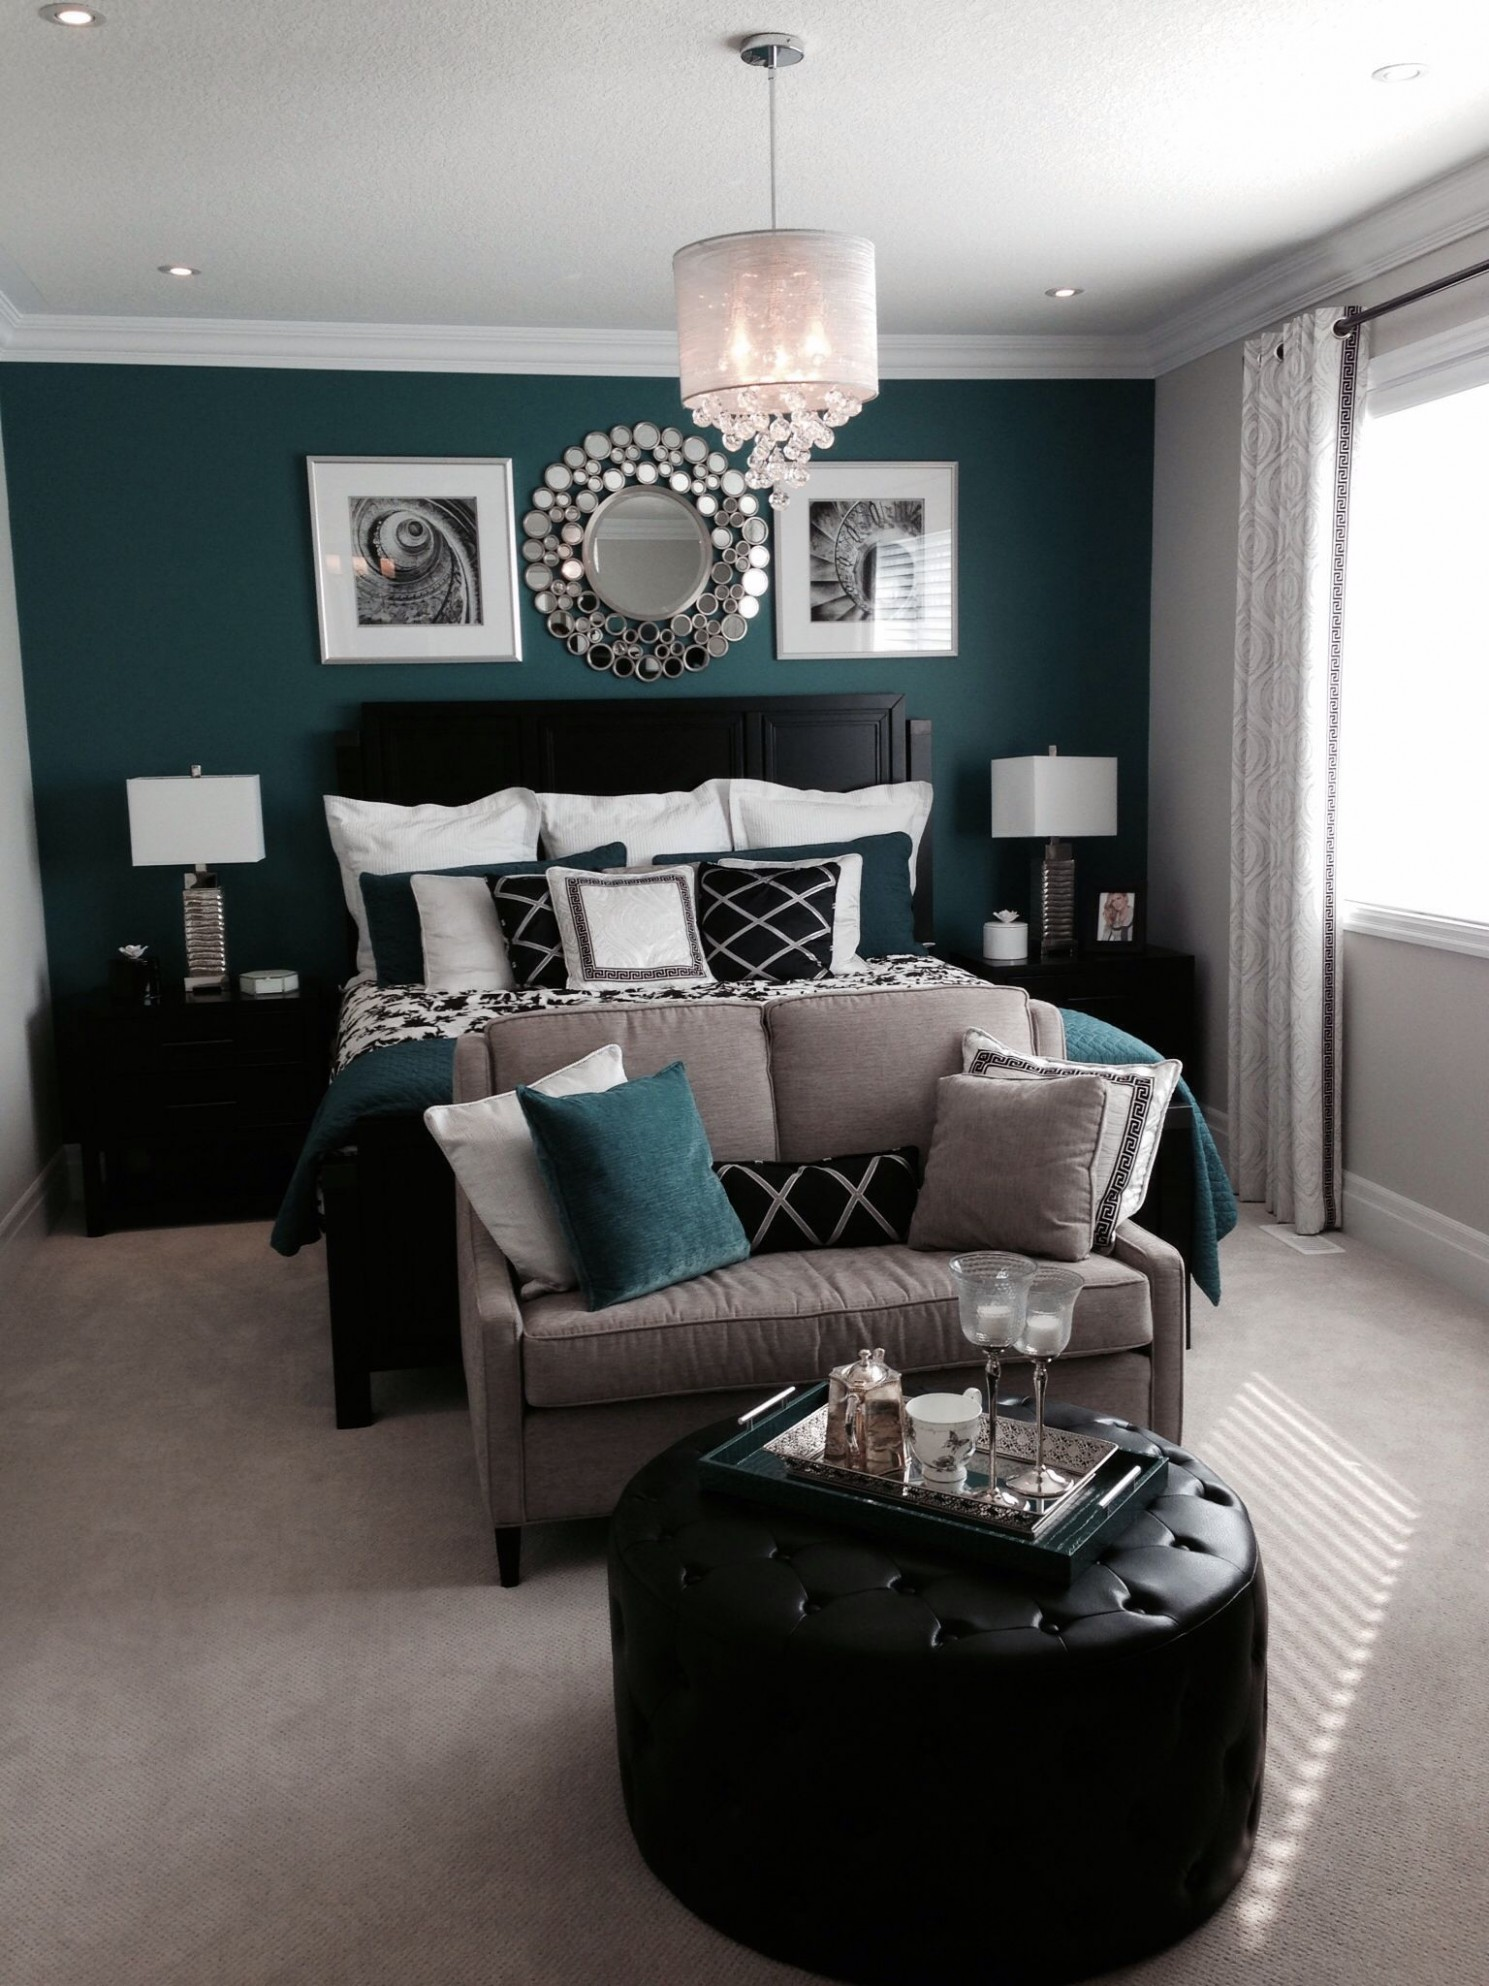 Bedroom with a beautiful green or teal feature, accent wall and  - Bedroom Ideas Teal